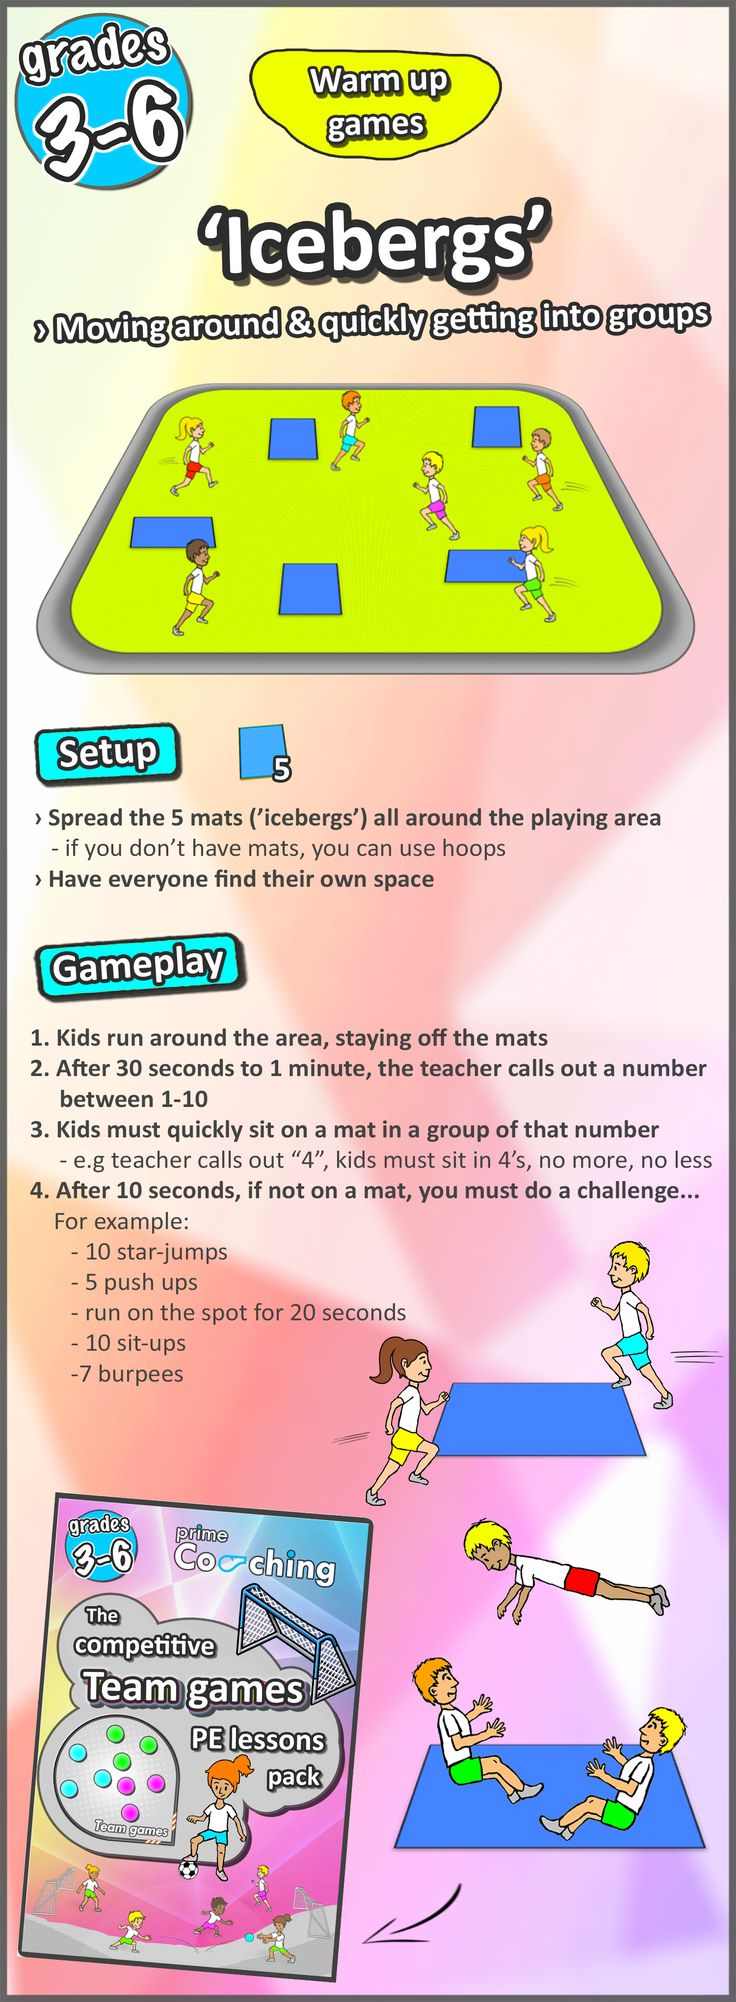 FREE DOWNLOAD - 8 easy to set up PE warm up games for your grades 3, 4, 5, and 6 kids - turn them into sport stars!